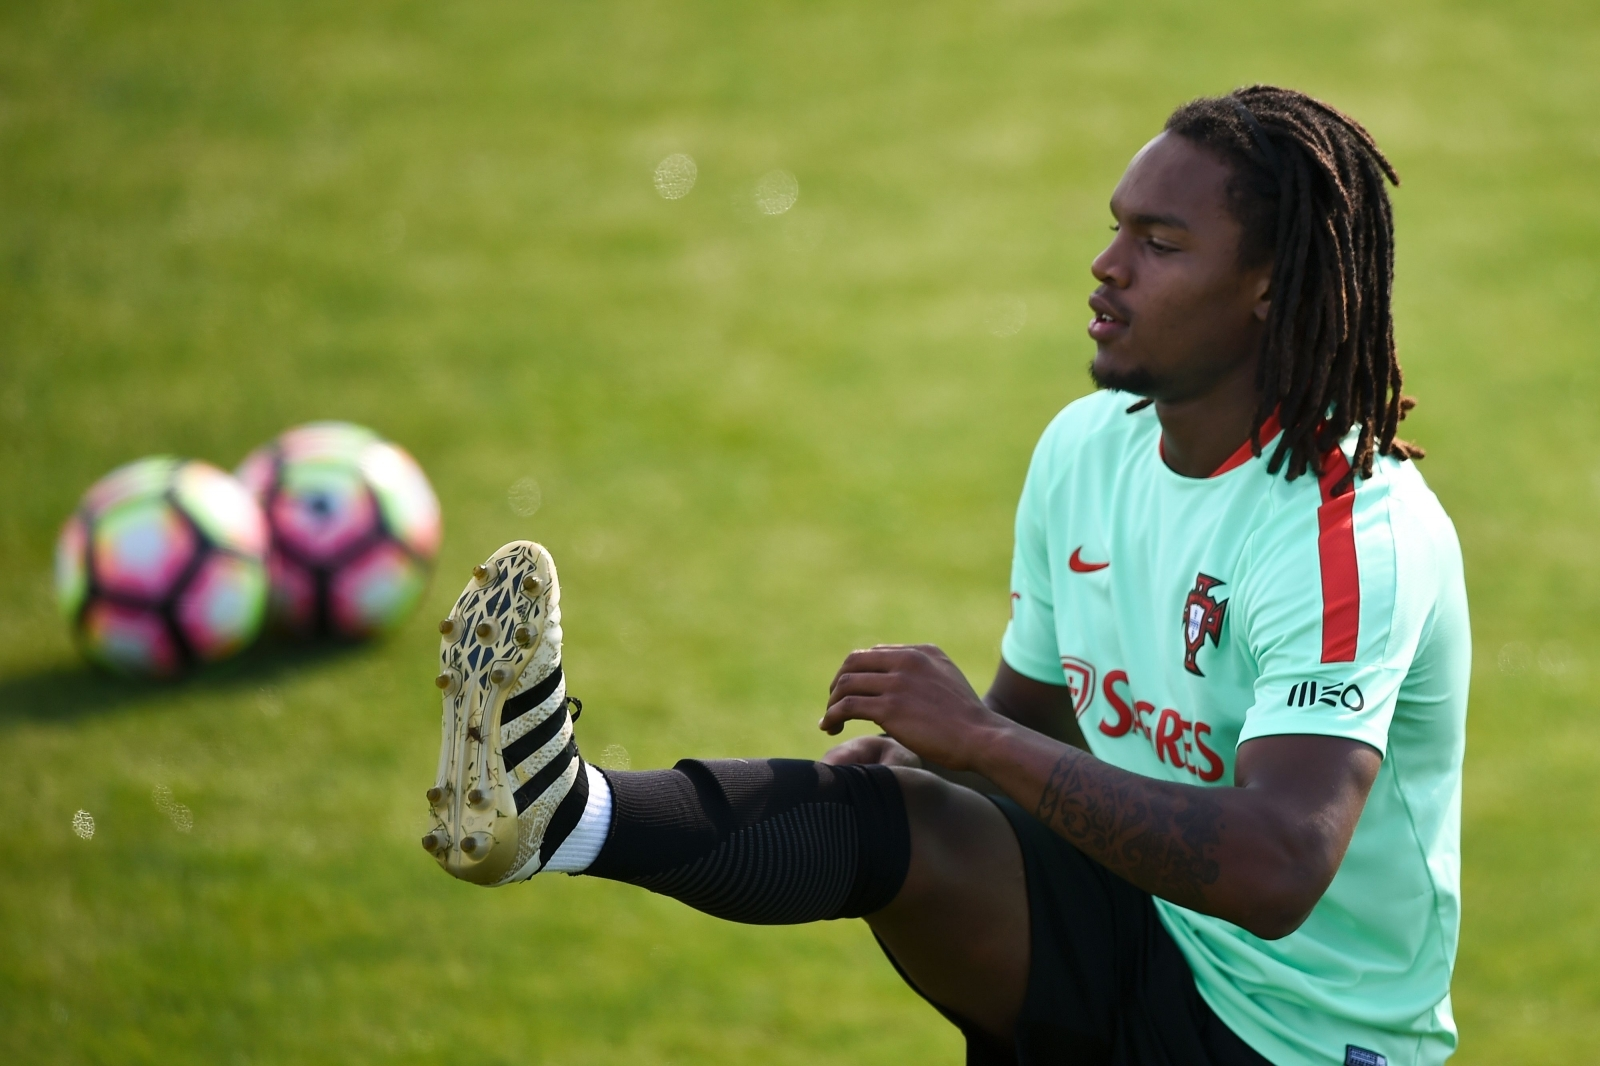 New boys: Sanches and Bony ready to start for Swansea